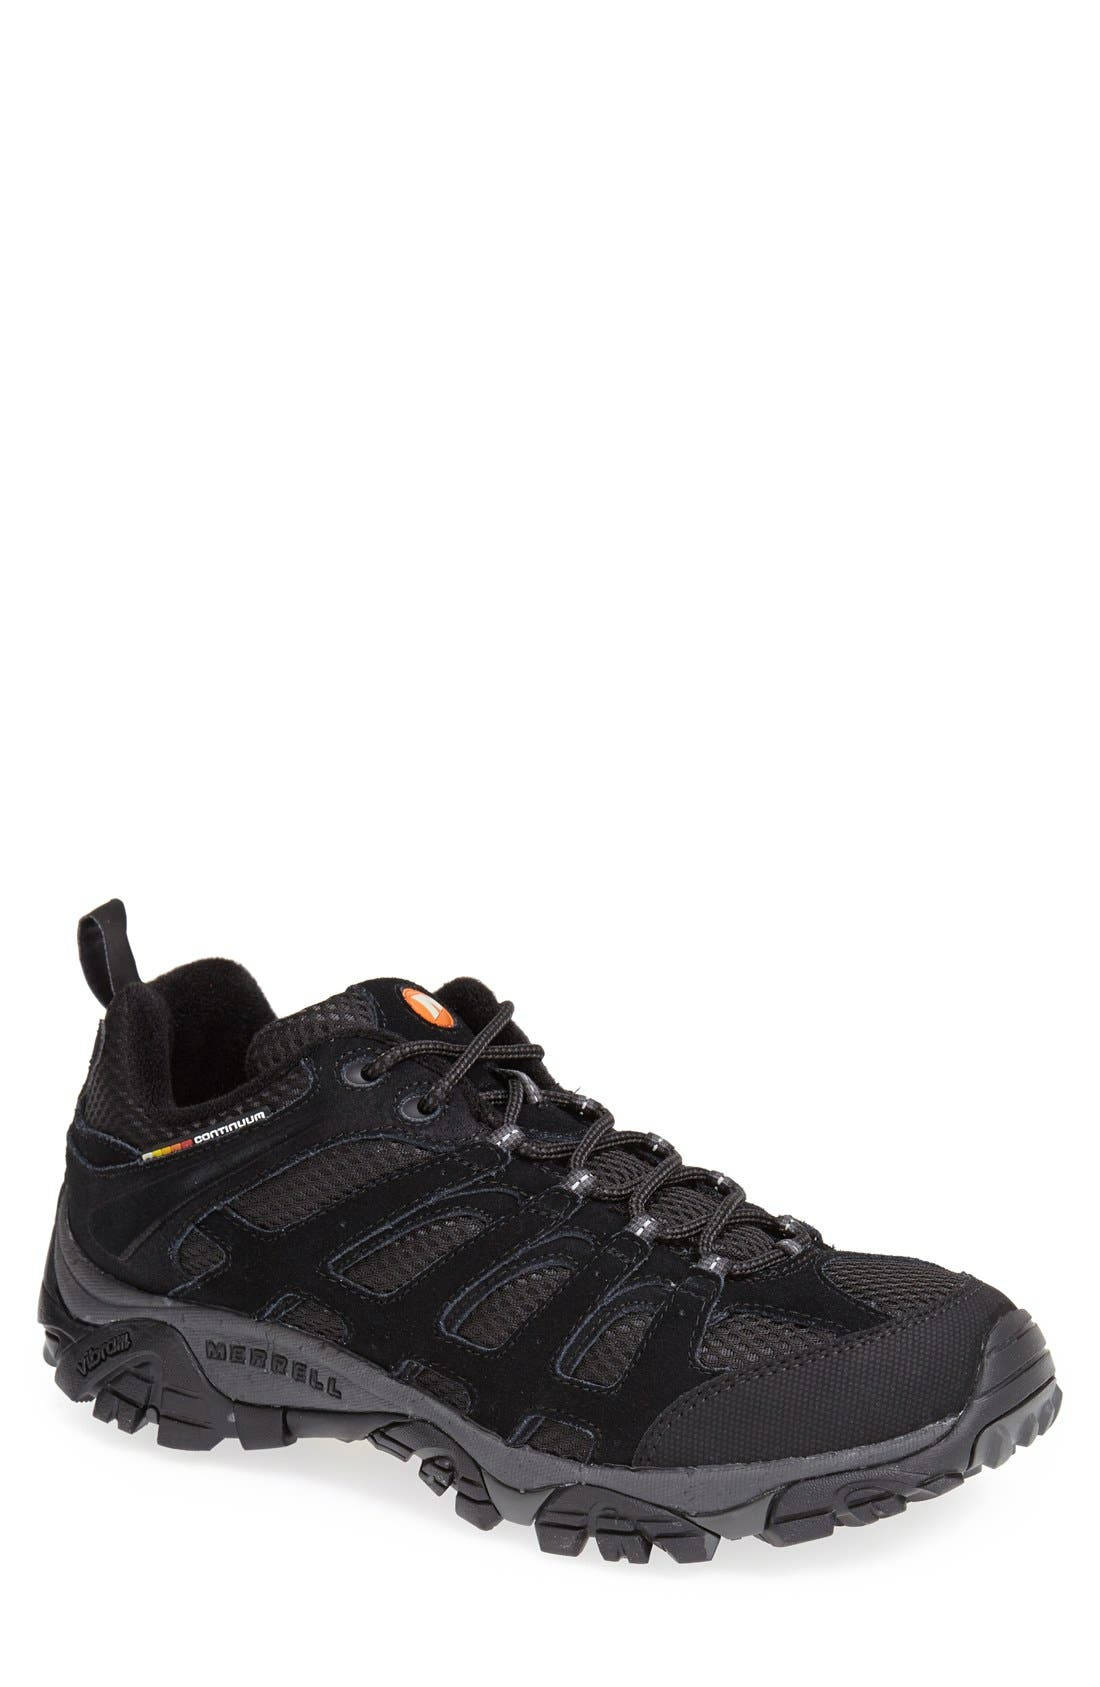 Main Image - Merrell 'Moab Ventilator' Hiking Shoe (Men)